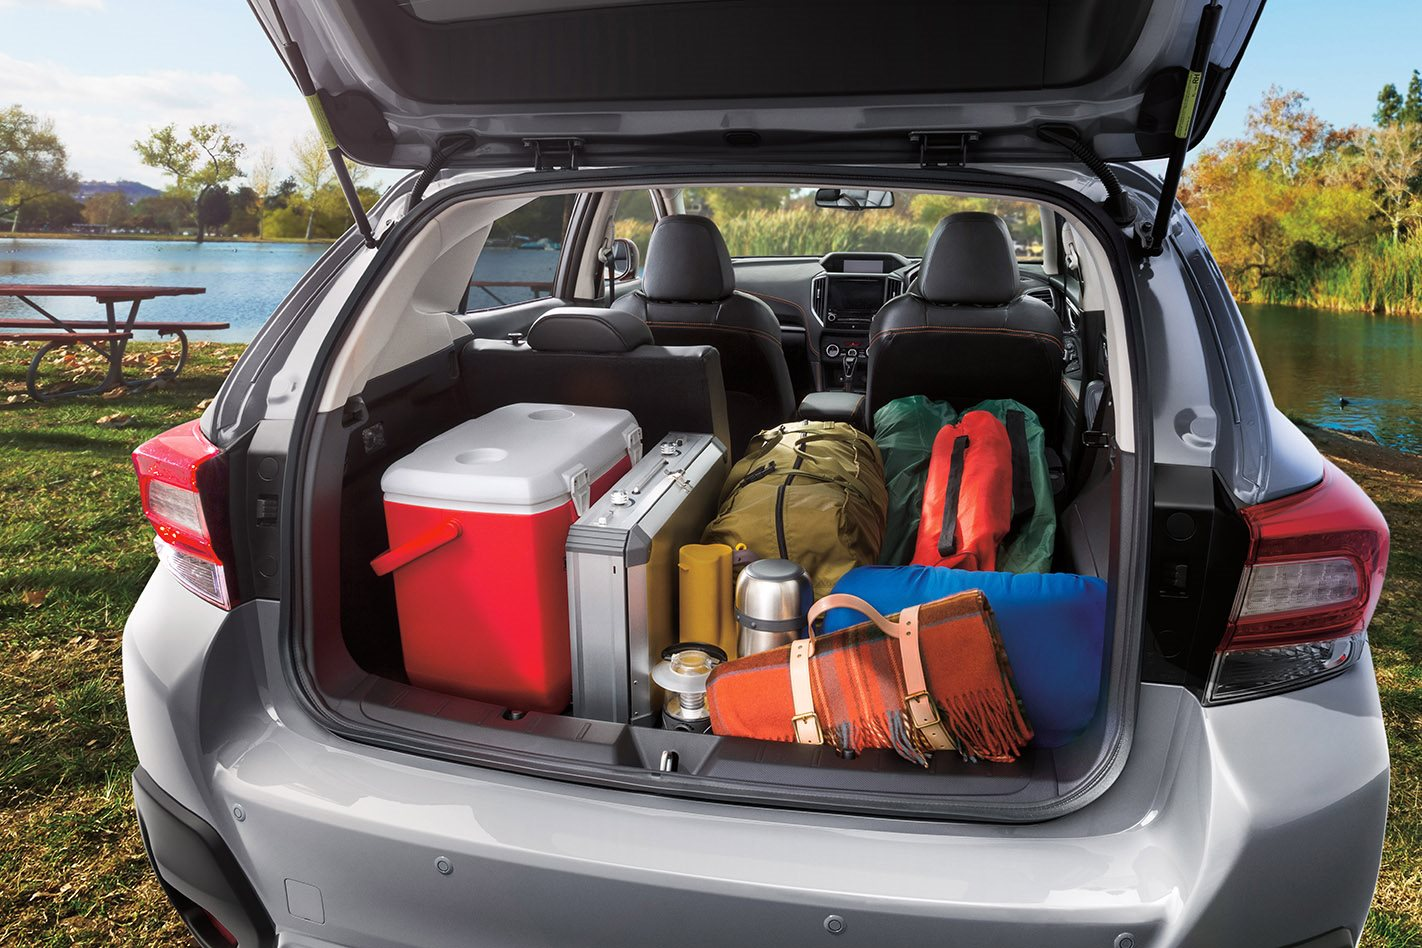 grand new avanza 2019 all alphard bandung boot space of australia's best-selling suvs